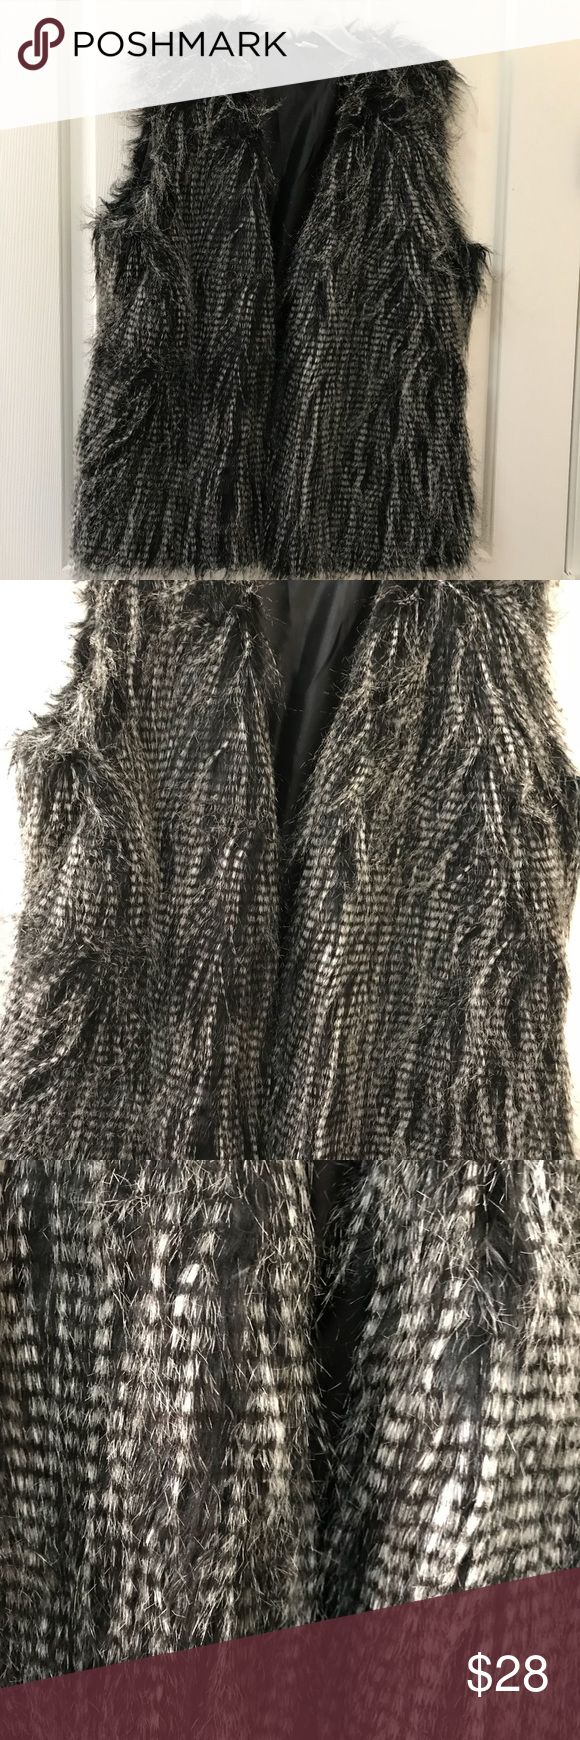 Belle Bird Faux Fur Black and Silver Vest Belle Bird Faux Fur Black and Silver  Gray Vest. Very pretty, great with jeans or black leggings. Dress it up or down. Size XL NWOT Bell Bird Jackets & Coats Vests